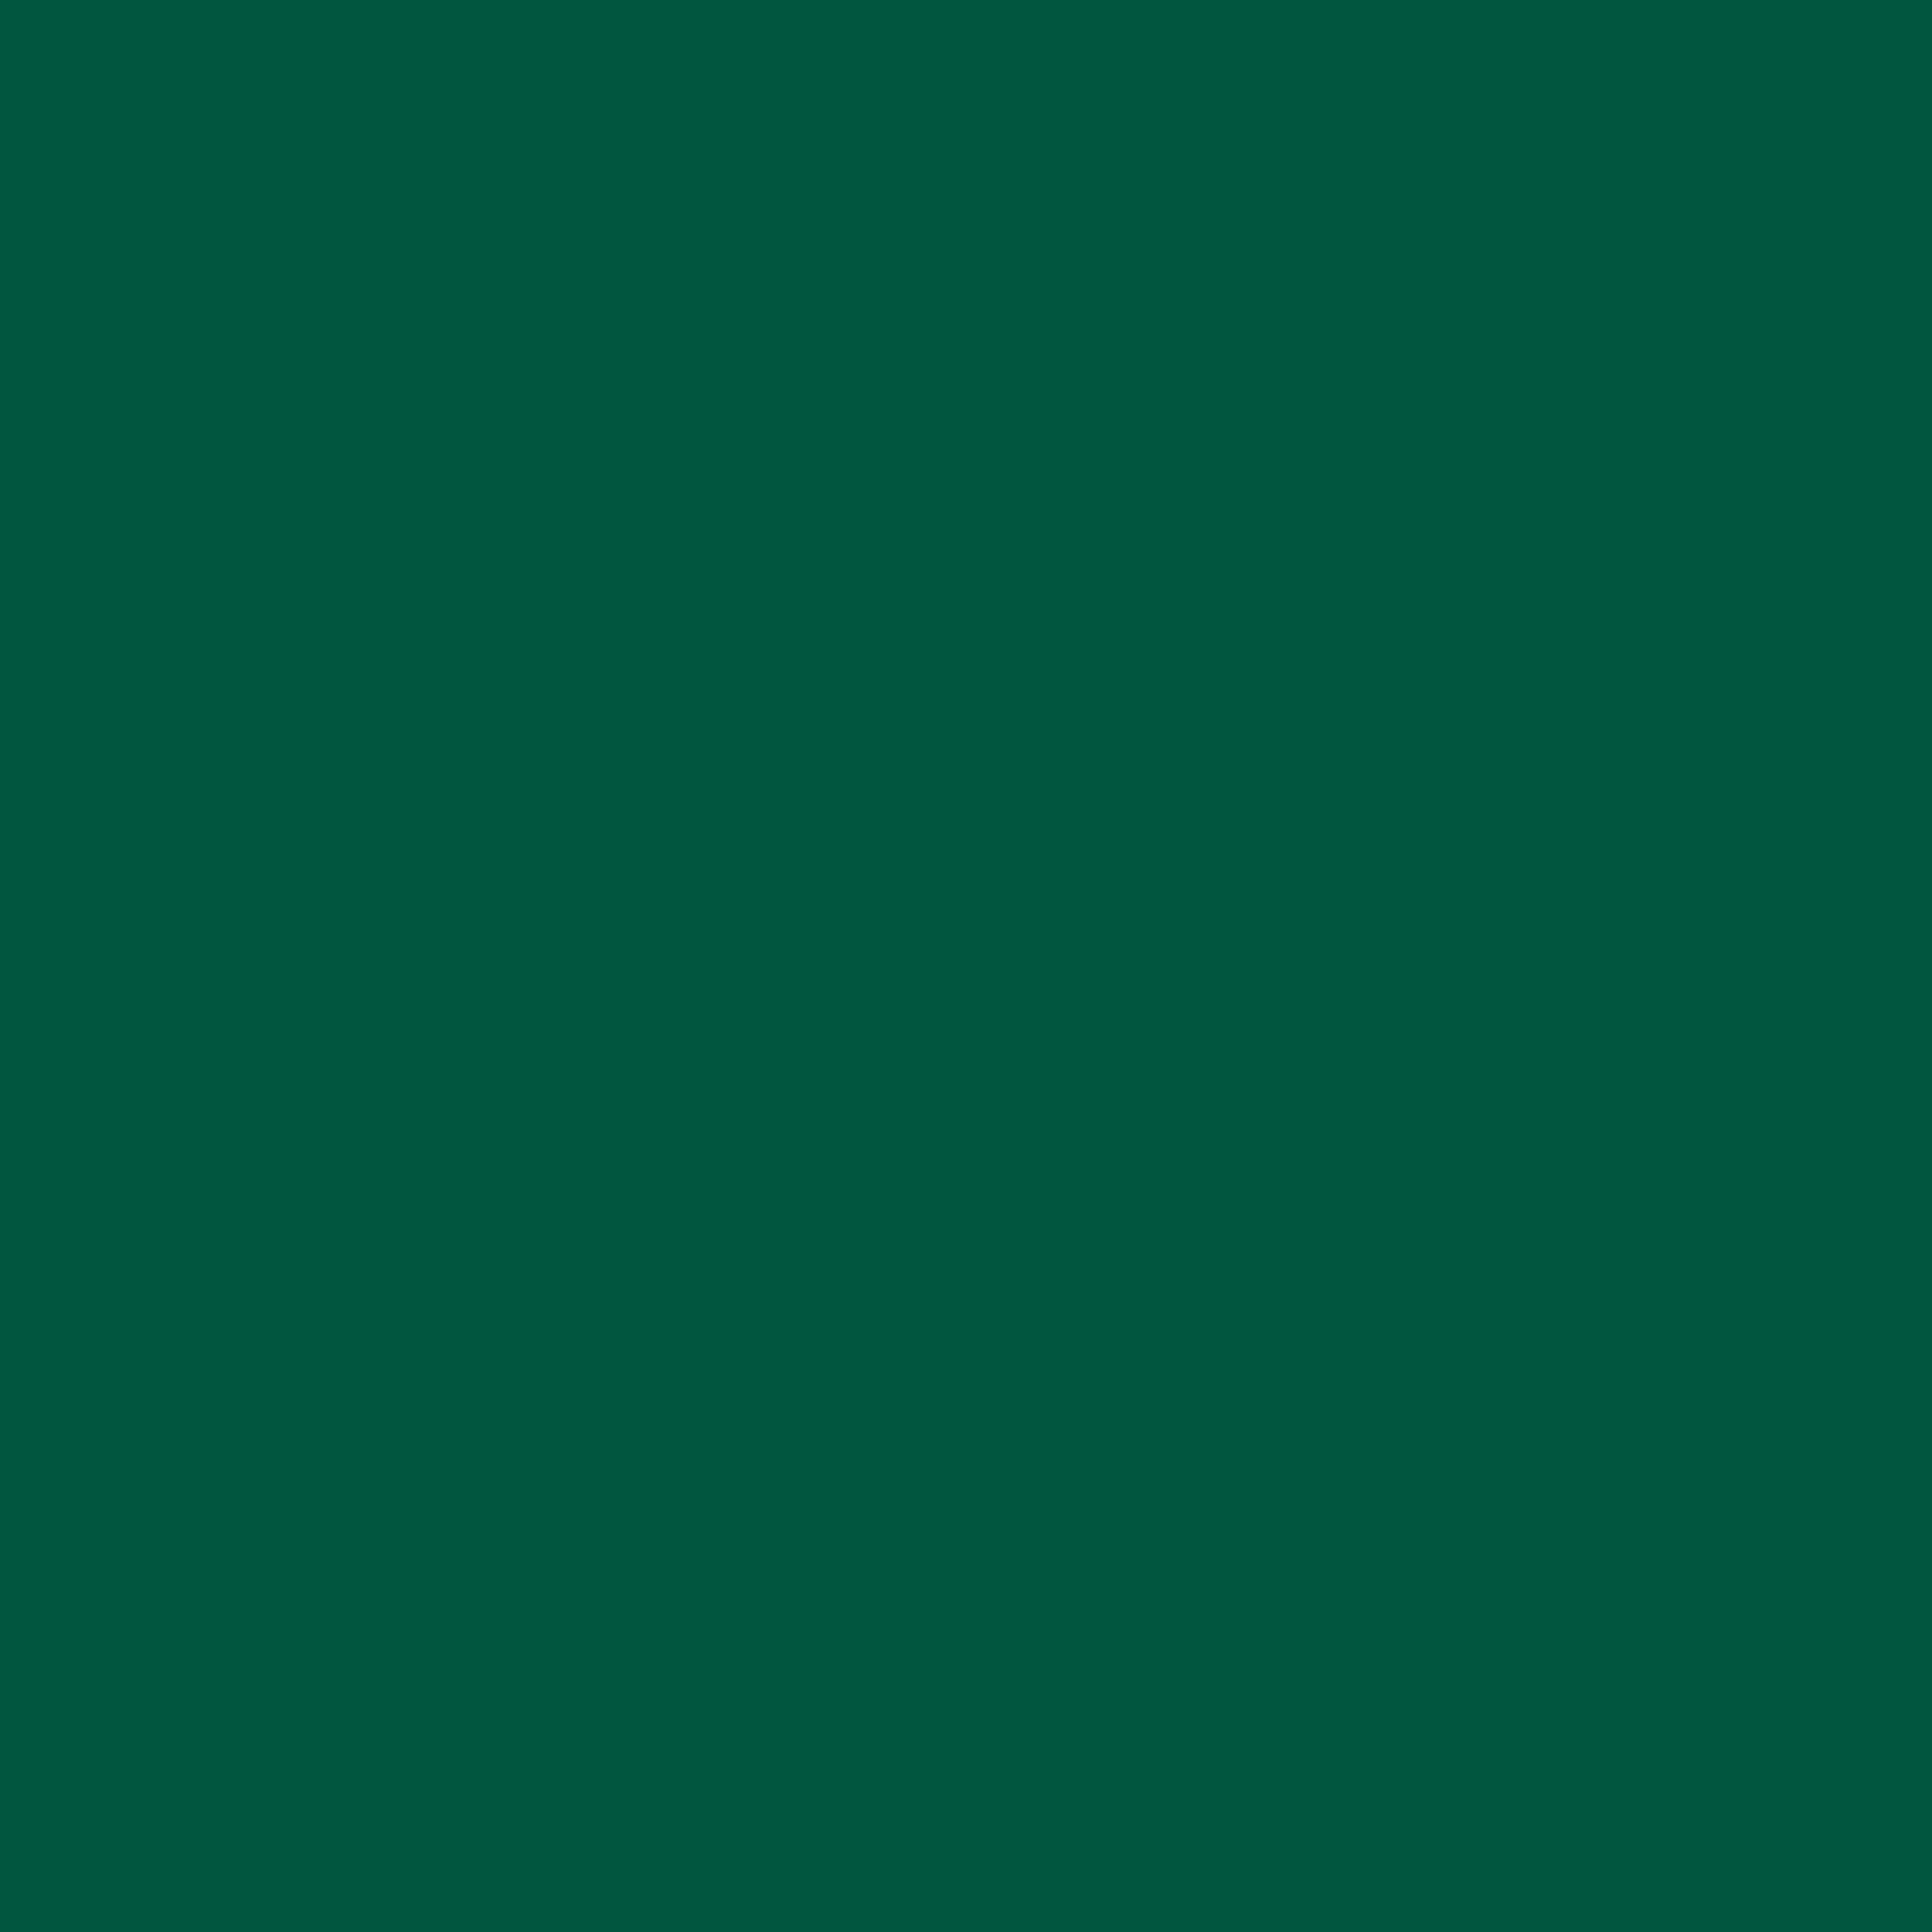 2732x2732 Sacramento State Green Solid Color Background